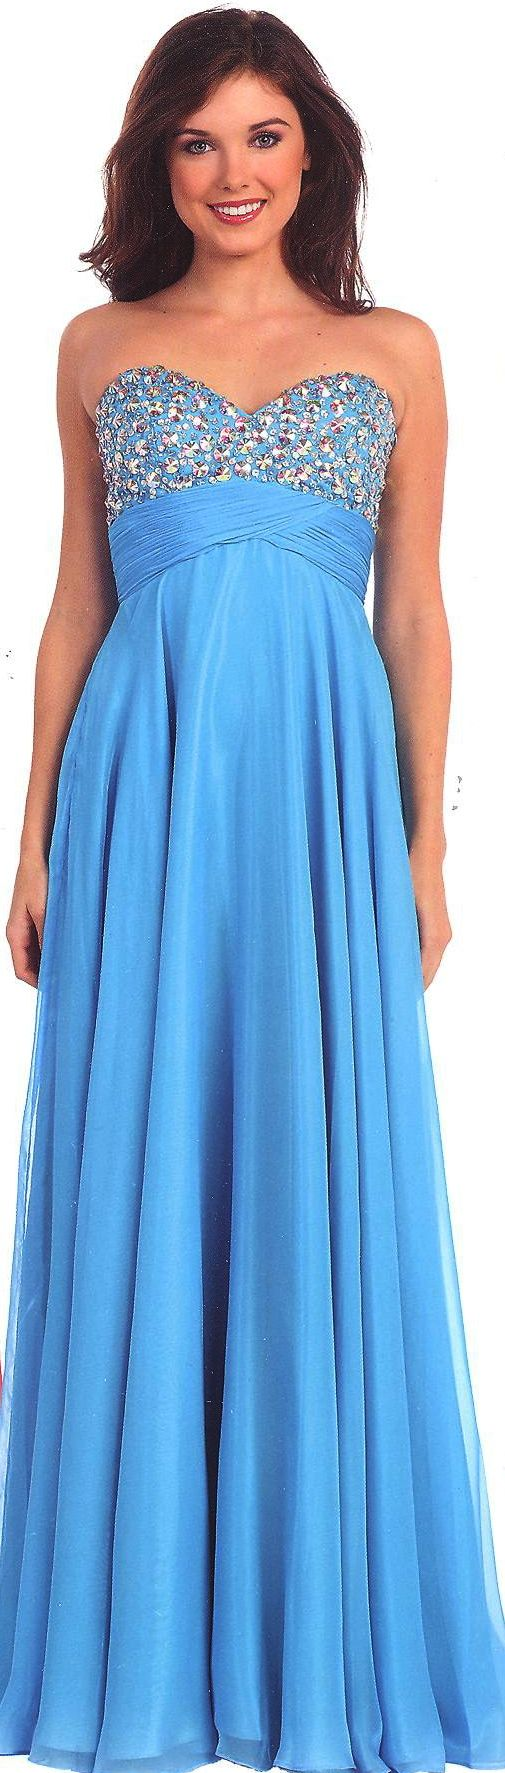 Prom Dresses Evening Dresses under $200<BR>11015<BR>Strapless sweetheart bodice with large stones, ruched crisscross trim leading to empire waist